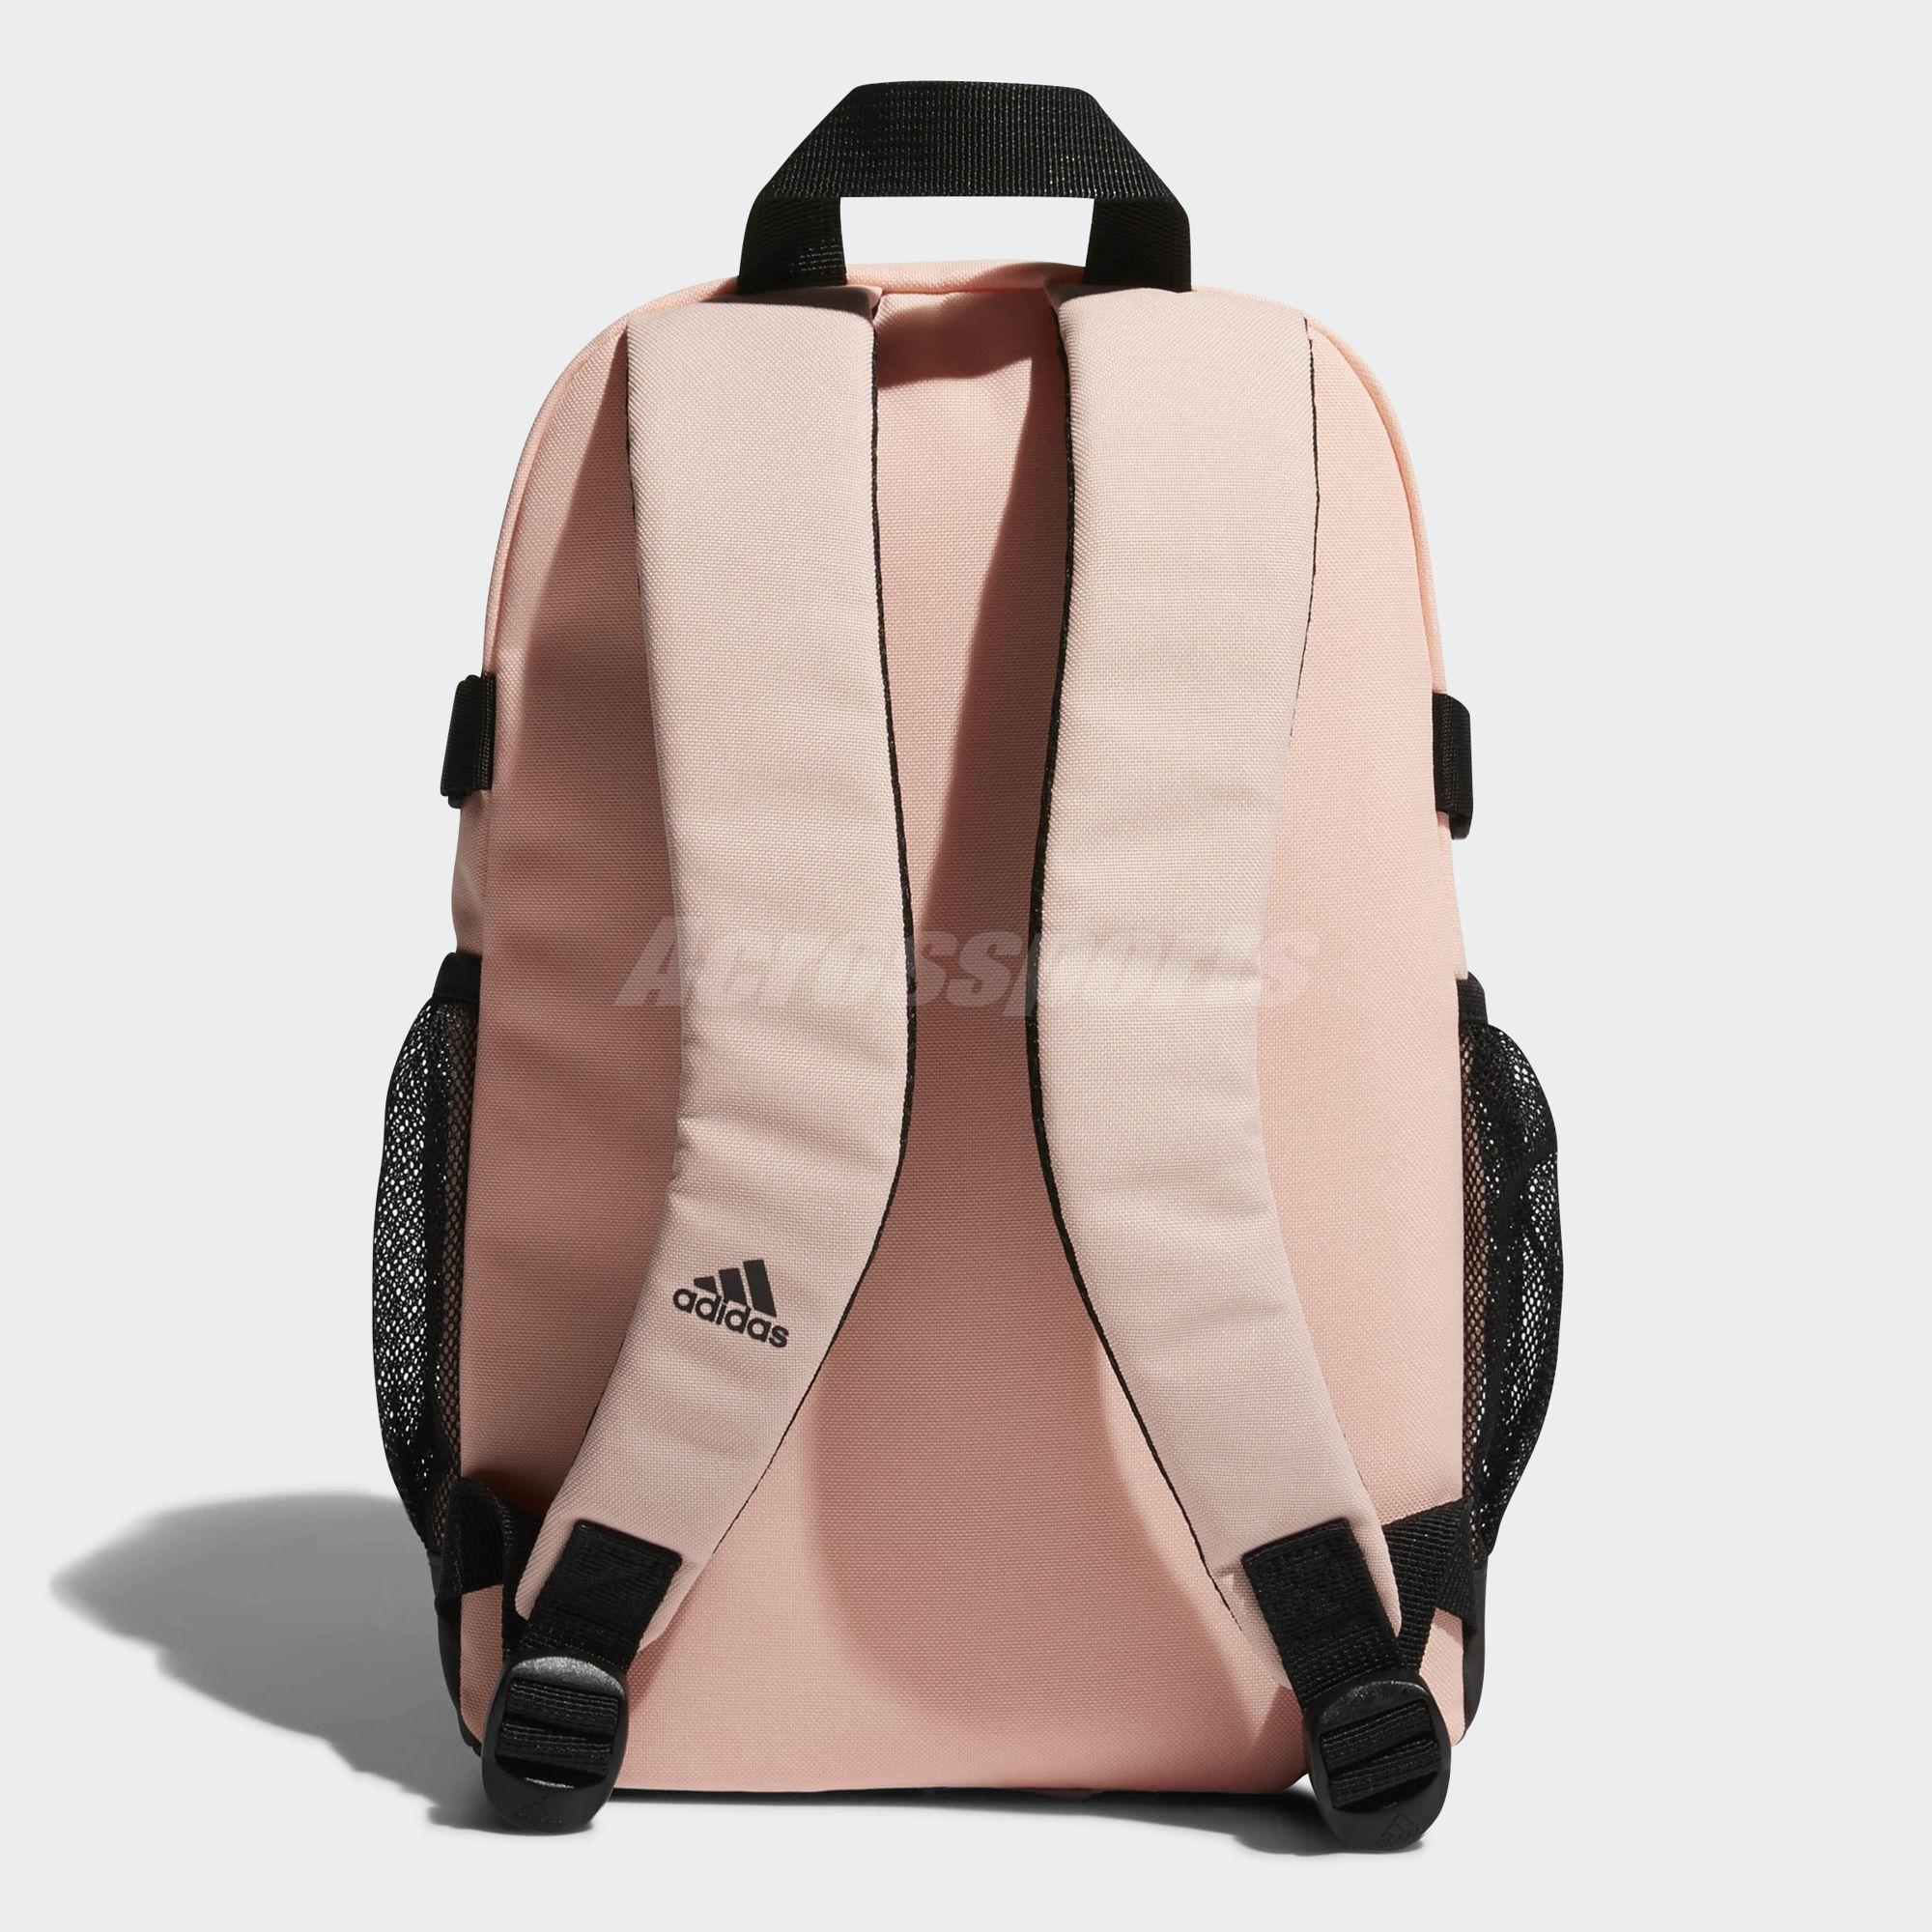 3056f64624 adidas Power Backpack Training Workout Fitness Gym Running Sport Bag ...